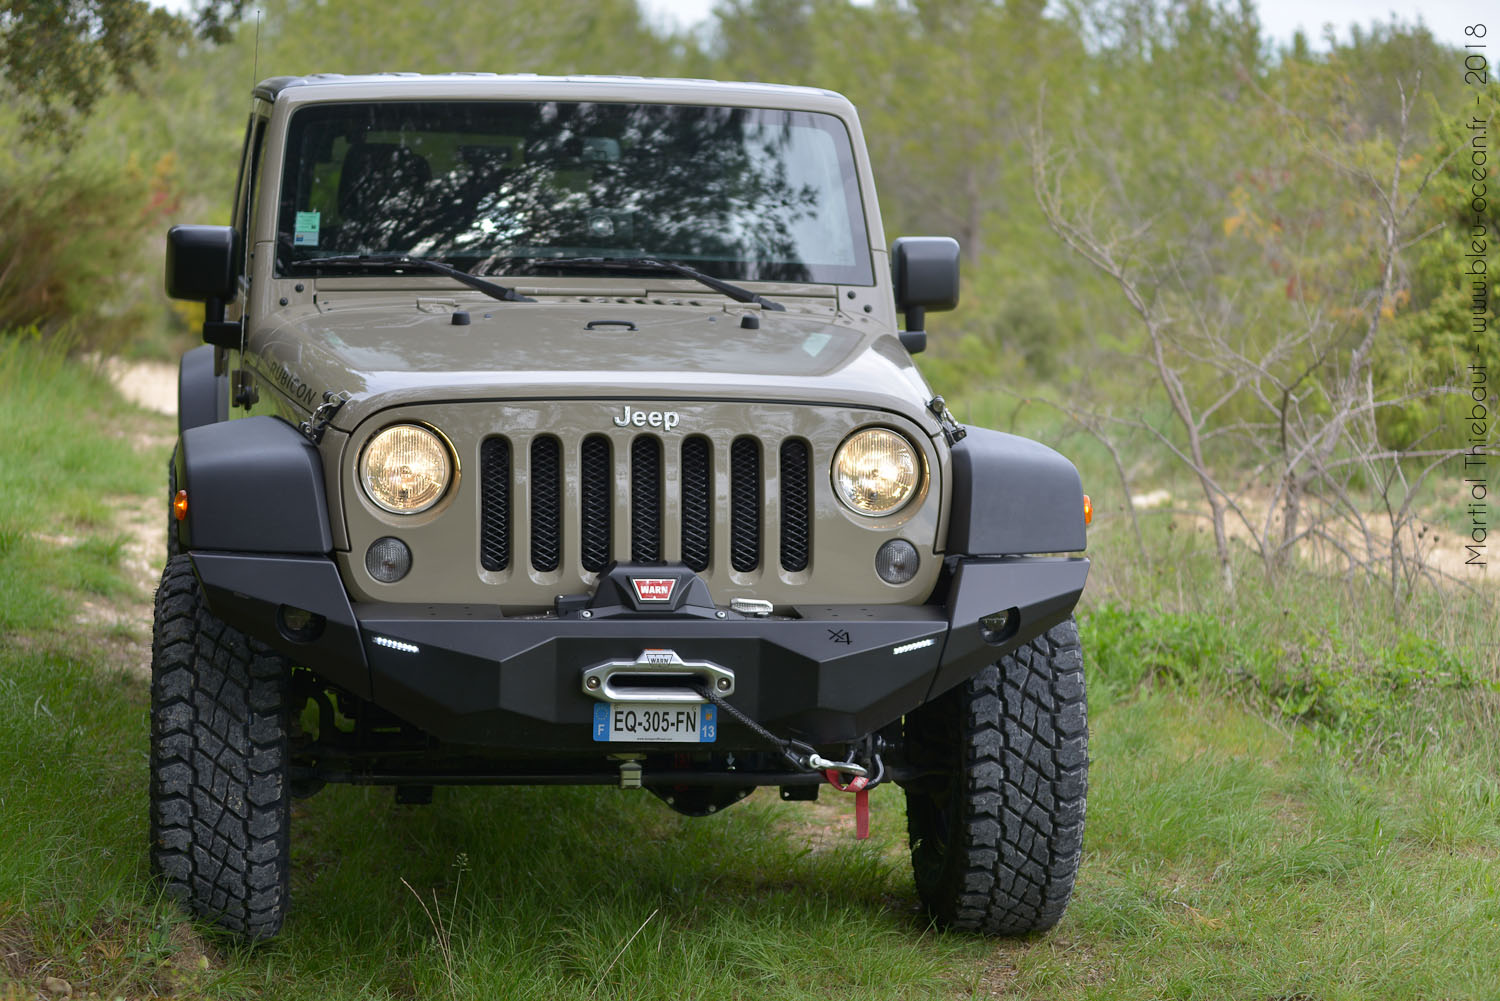 Jeep JK Unlimited Rubicon - Bumperoffroad - Teraflex